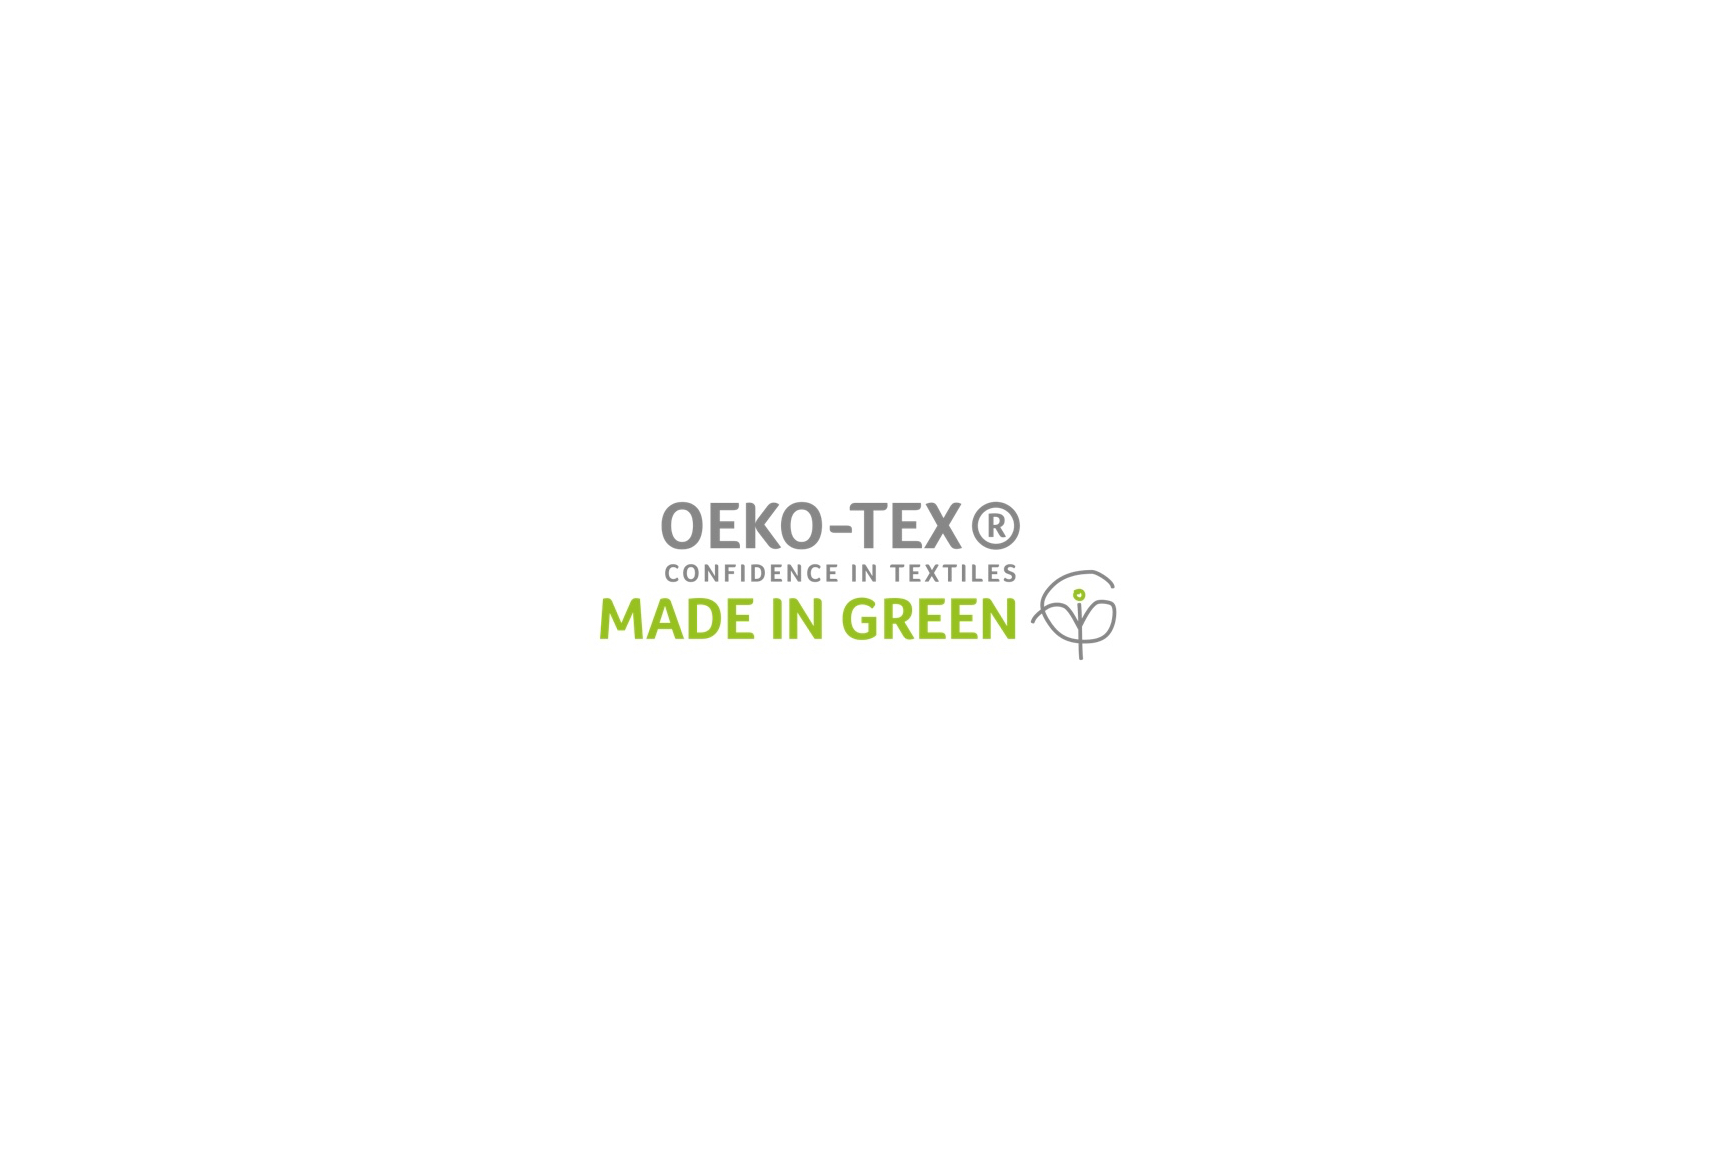 Oeko-Tex Made in Green logo